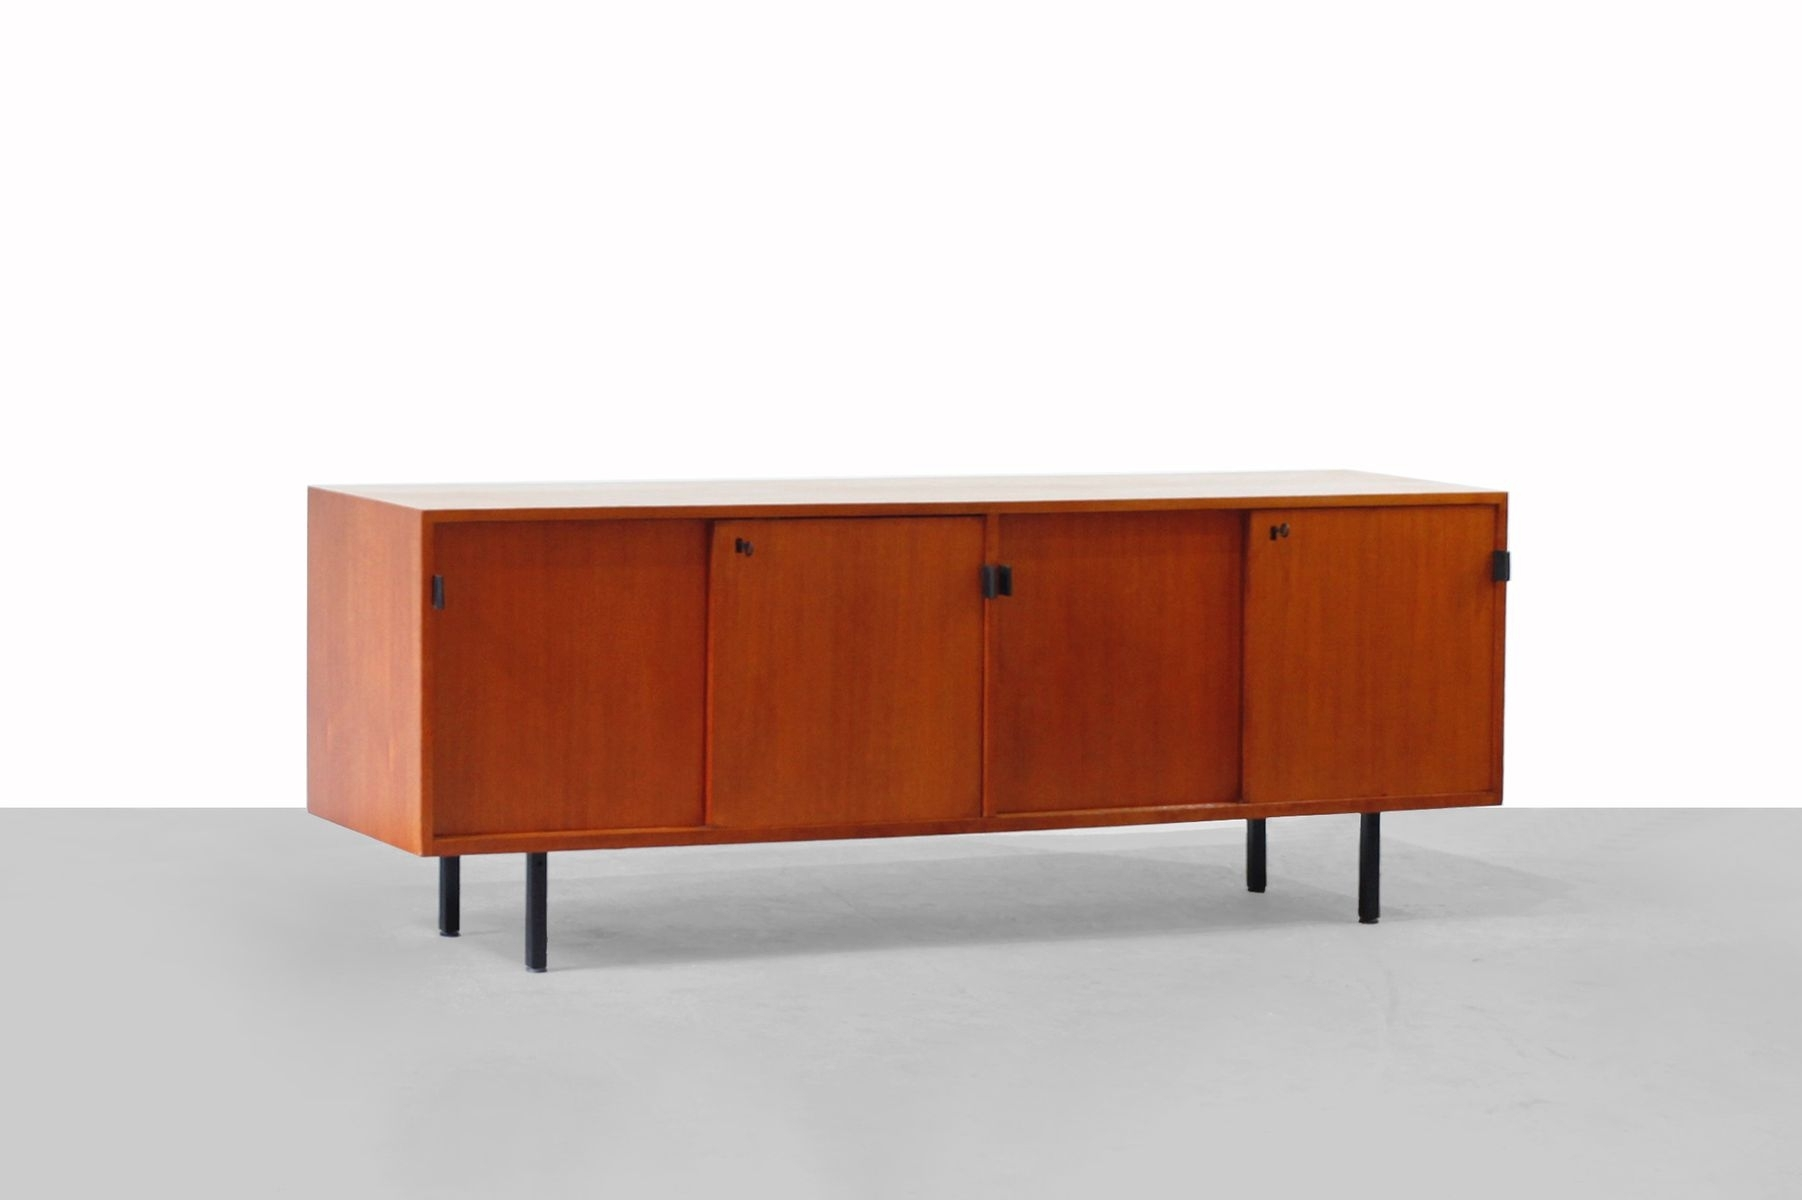 Inspiration about Teak Sideboardflorence Knoll For Knoll, 1950S For Sale At Pamono Throughout Current Girard 4 Door Sideboards (#3 of 20)